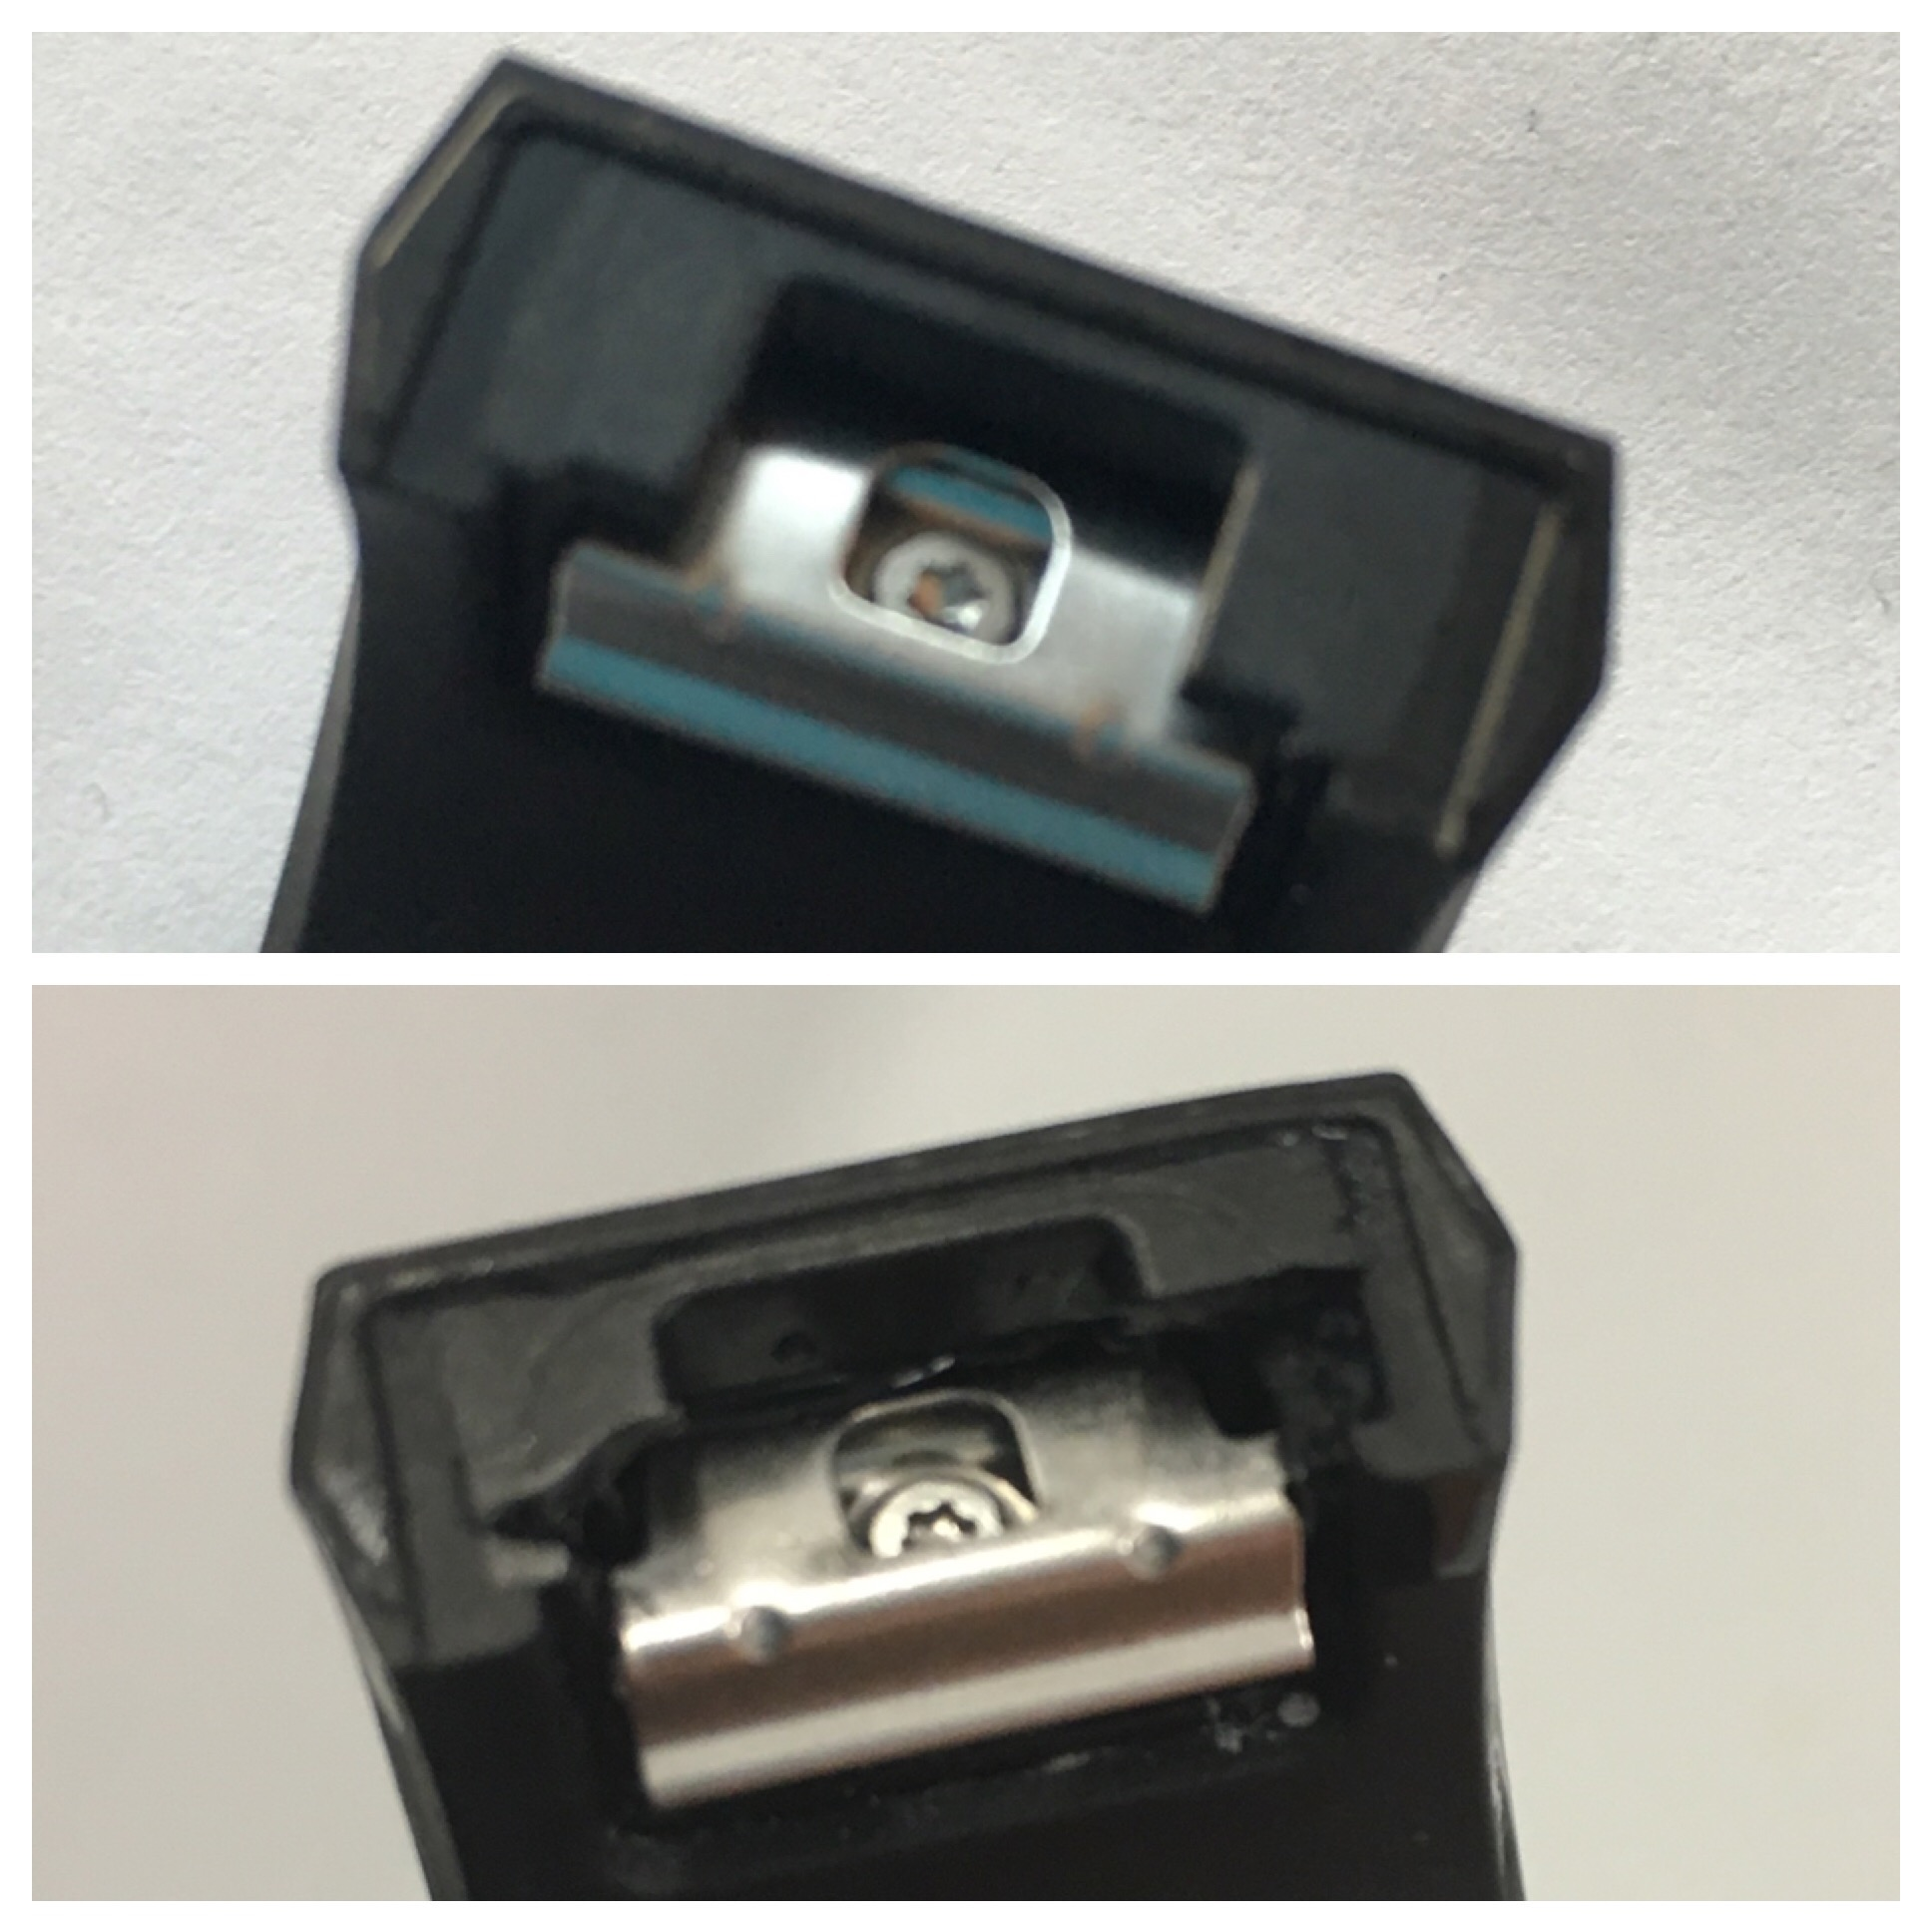 No 5 before and after - on the lower pic, you can see a tiny bit has broken on the left-hand side of the holder.